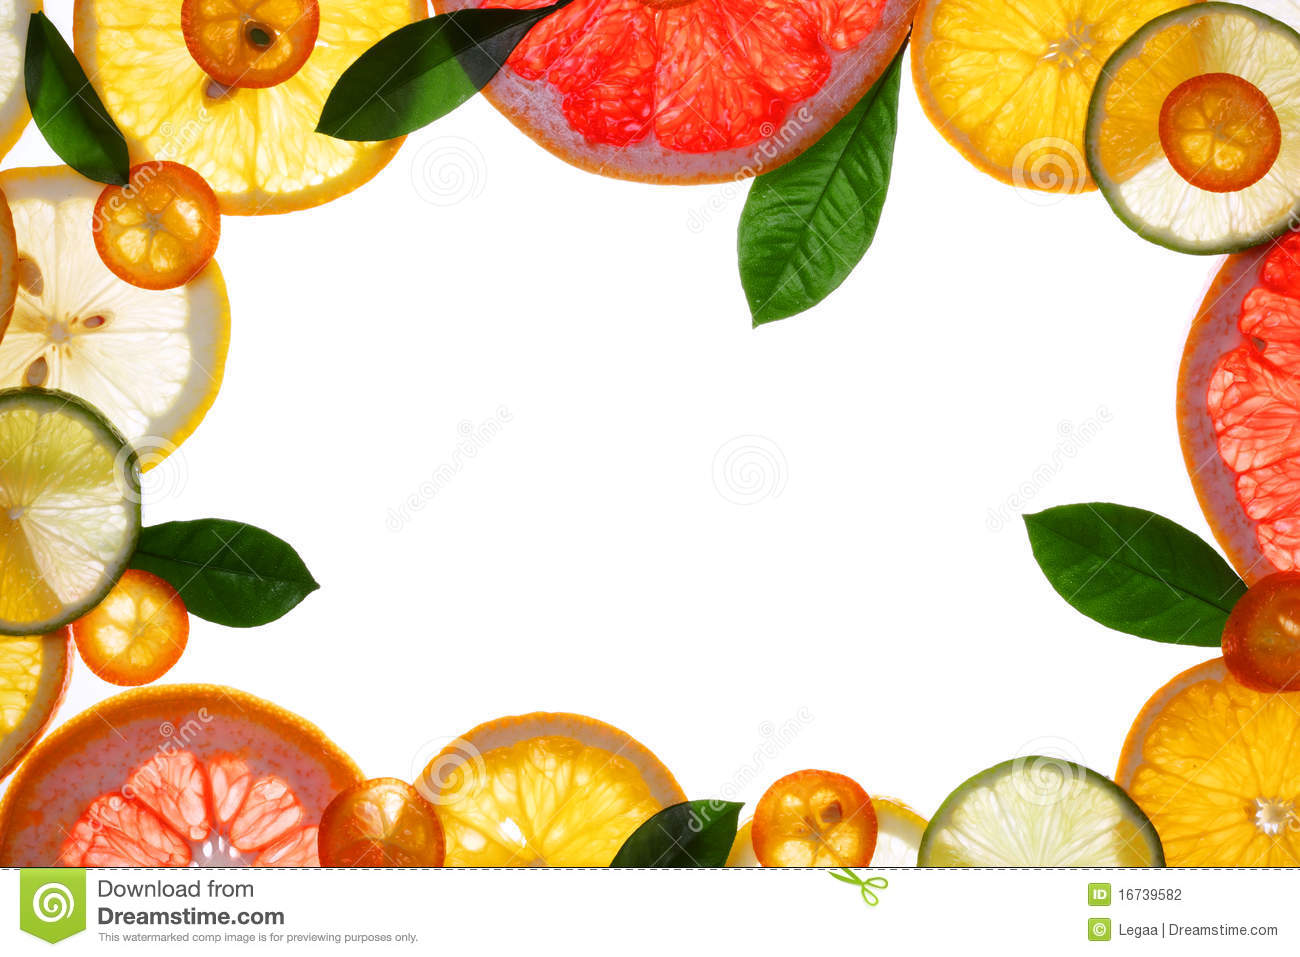 Stock Photography Fruit Design Borders Image16739582 on cartoon ice pops